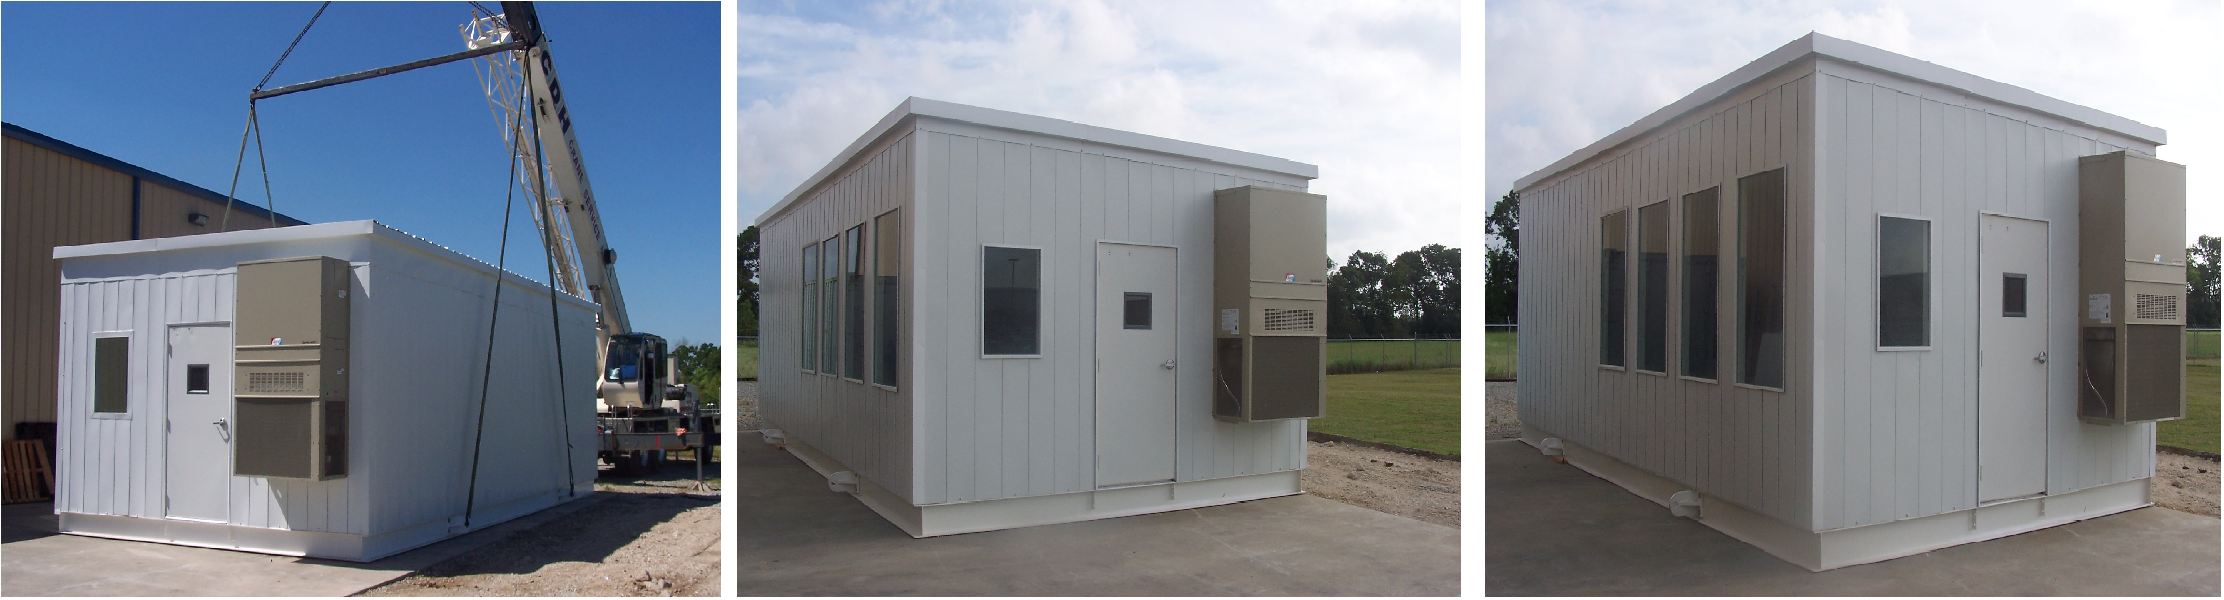 insulated enclosure